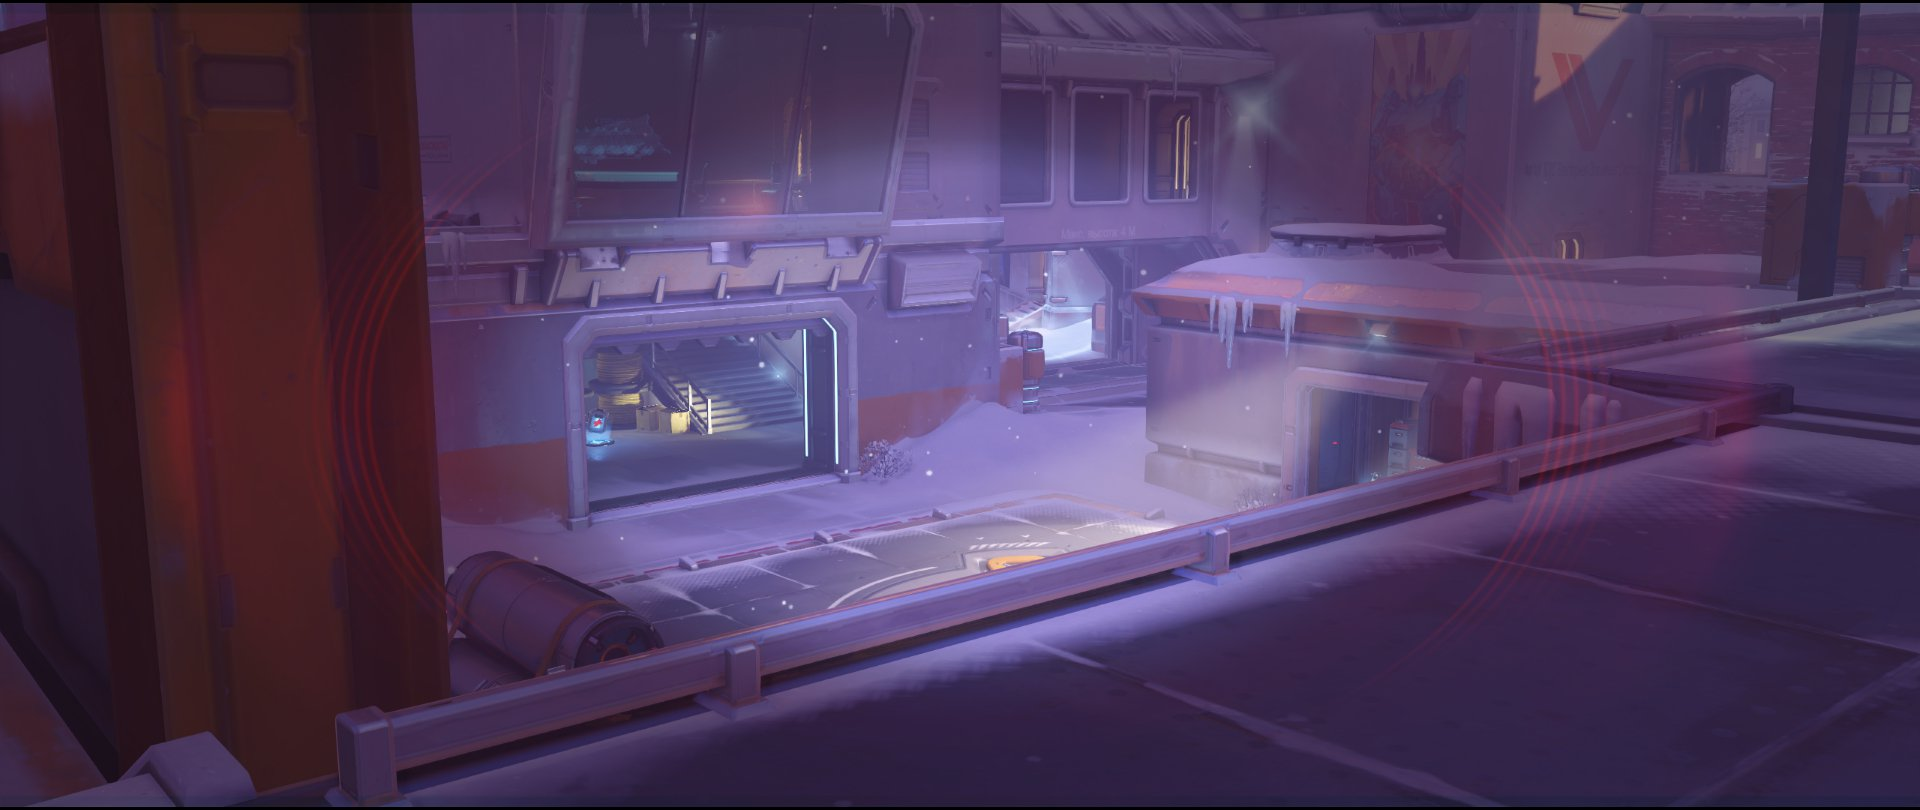 Comms long range view attack sniping spot Widowmaker Volskaya Industries Overwatch.jpg